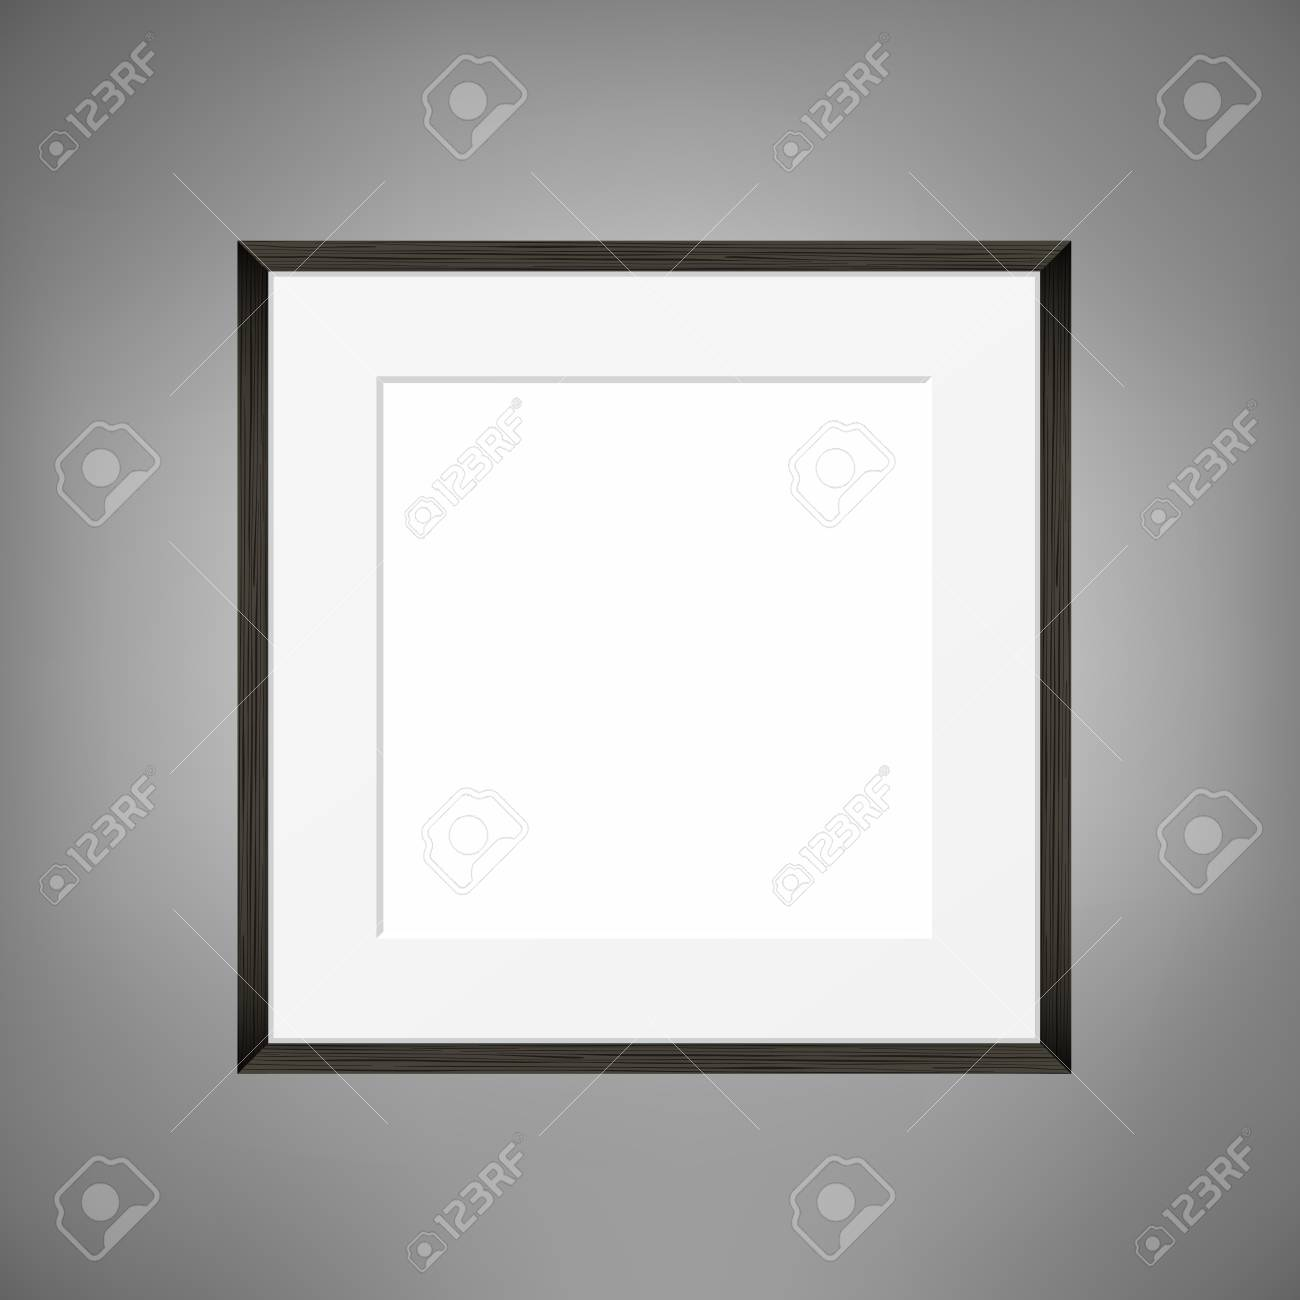 Square Blank picture frame template on grey wall. Realistic black frame - 76780014